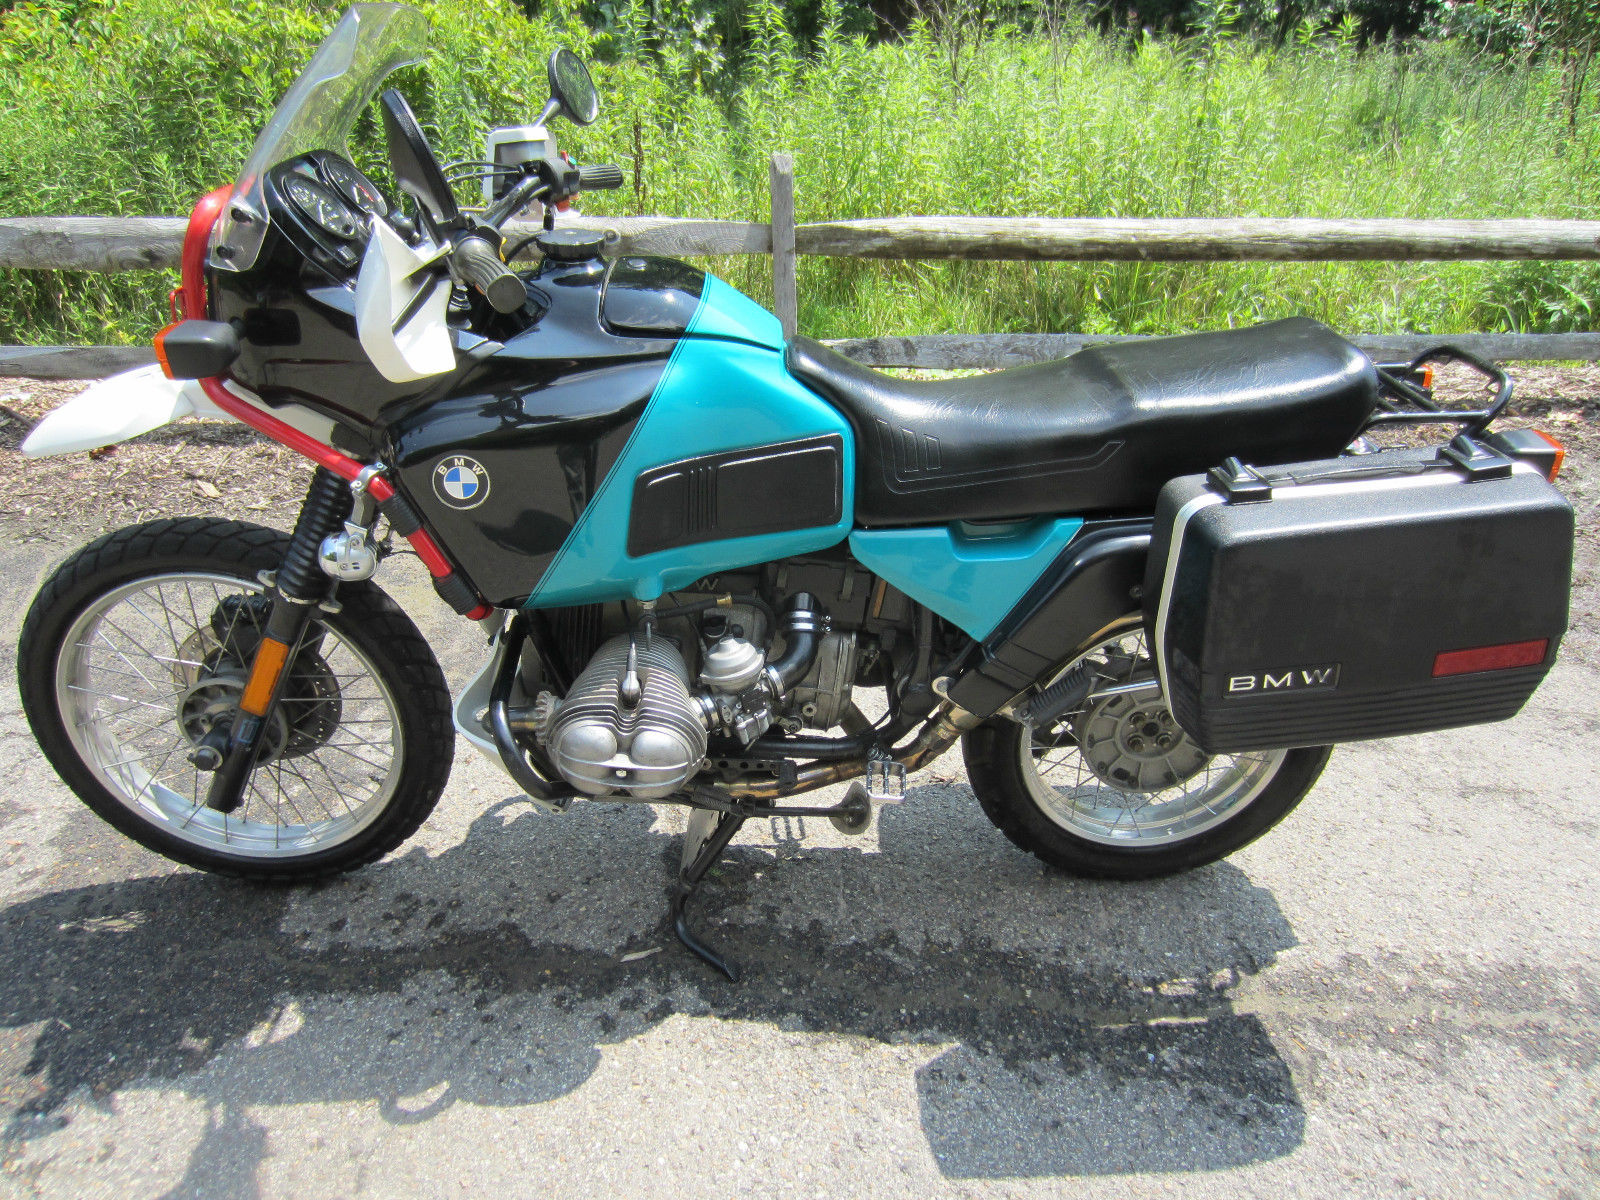 BMW R100GS 1992 images #77223